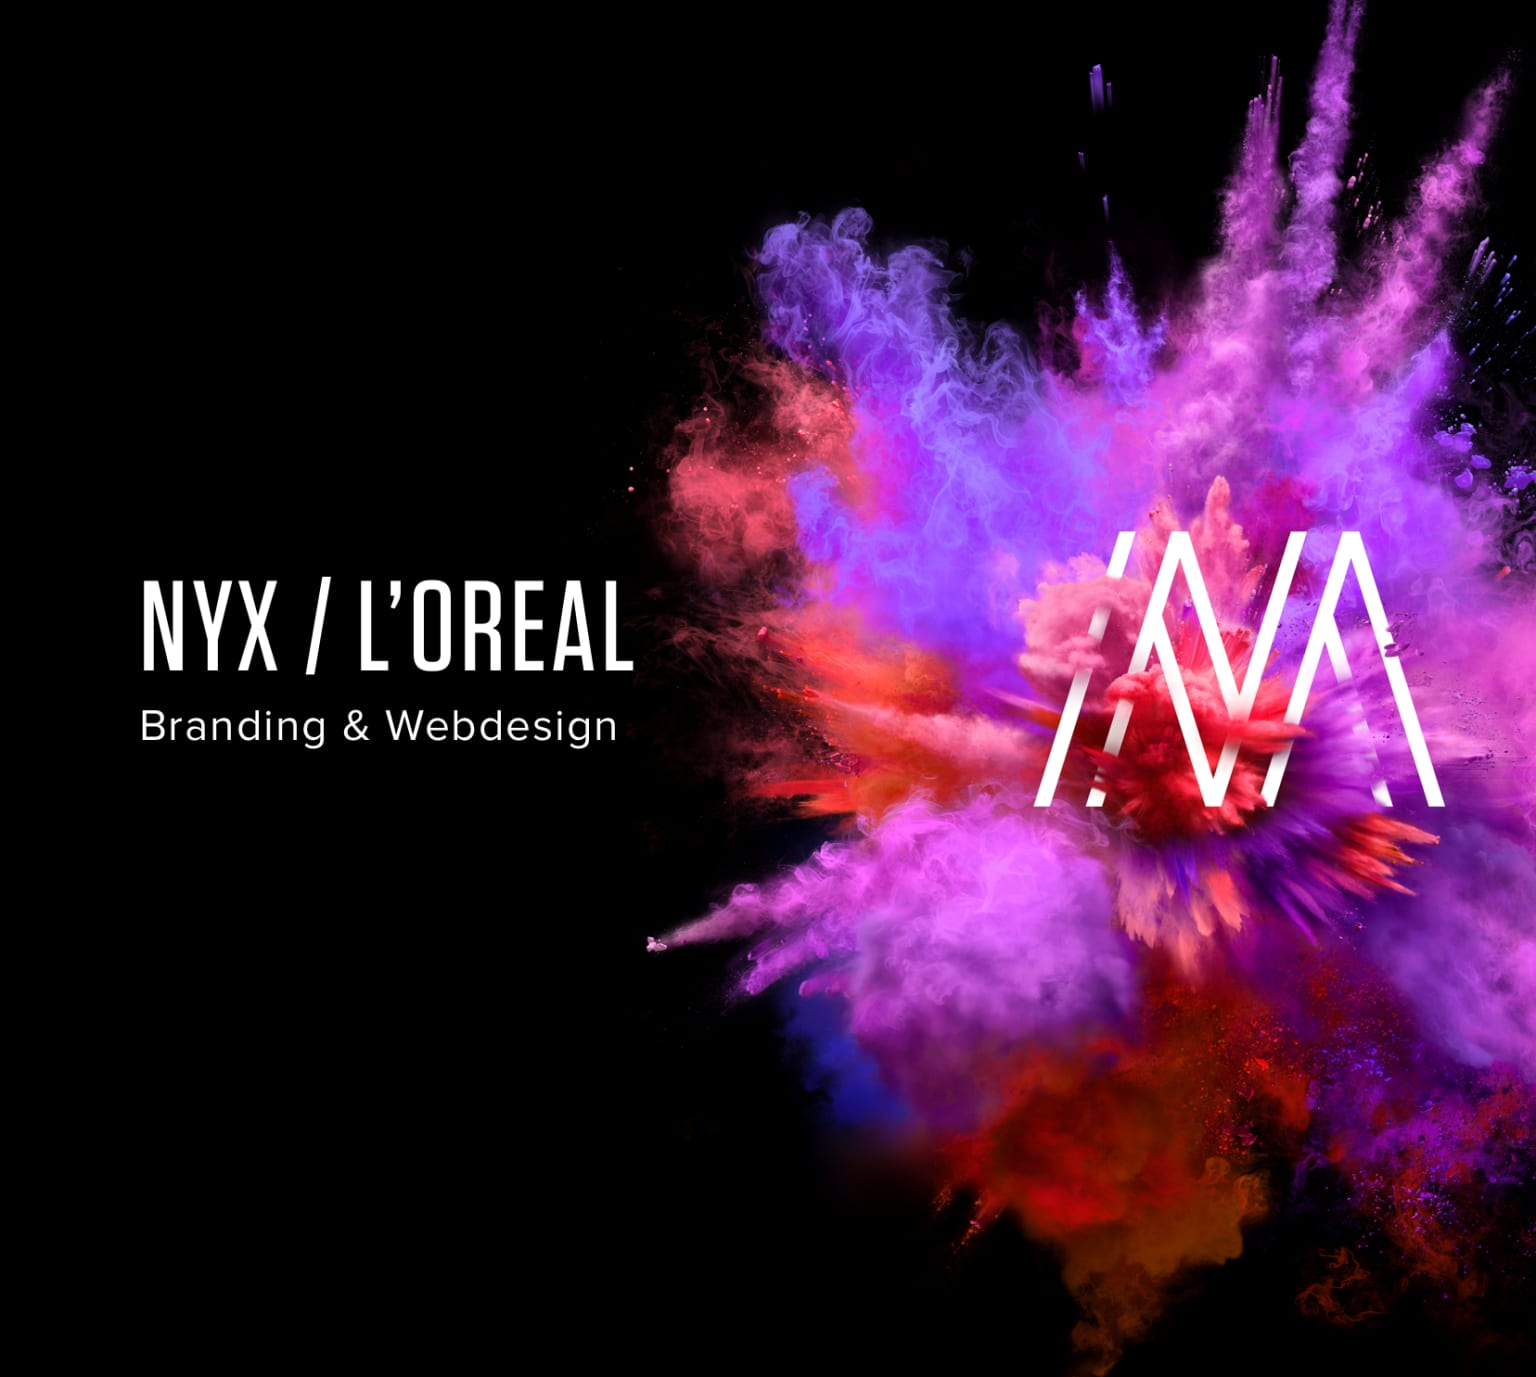 NYX Masterclass / Branding and Webdesign